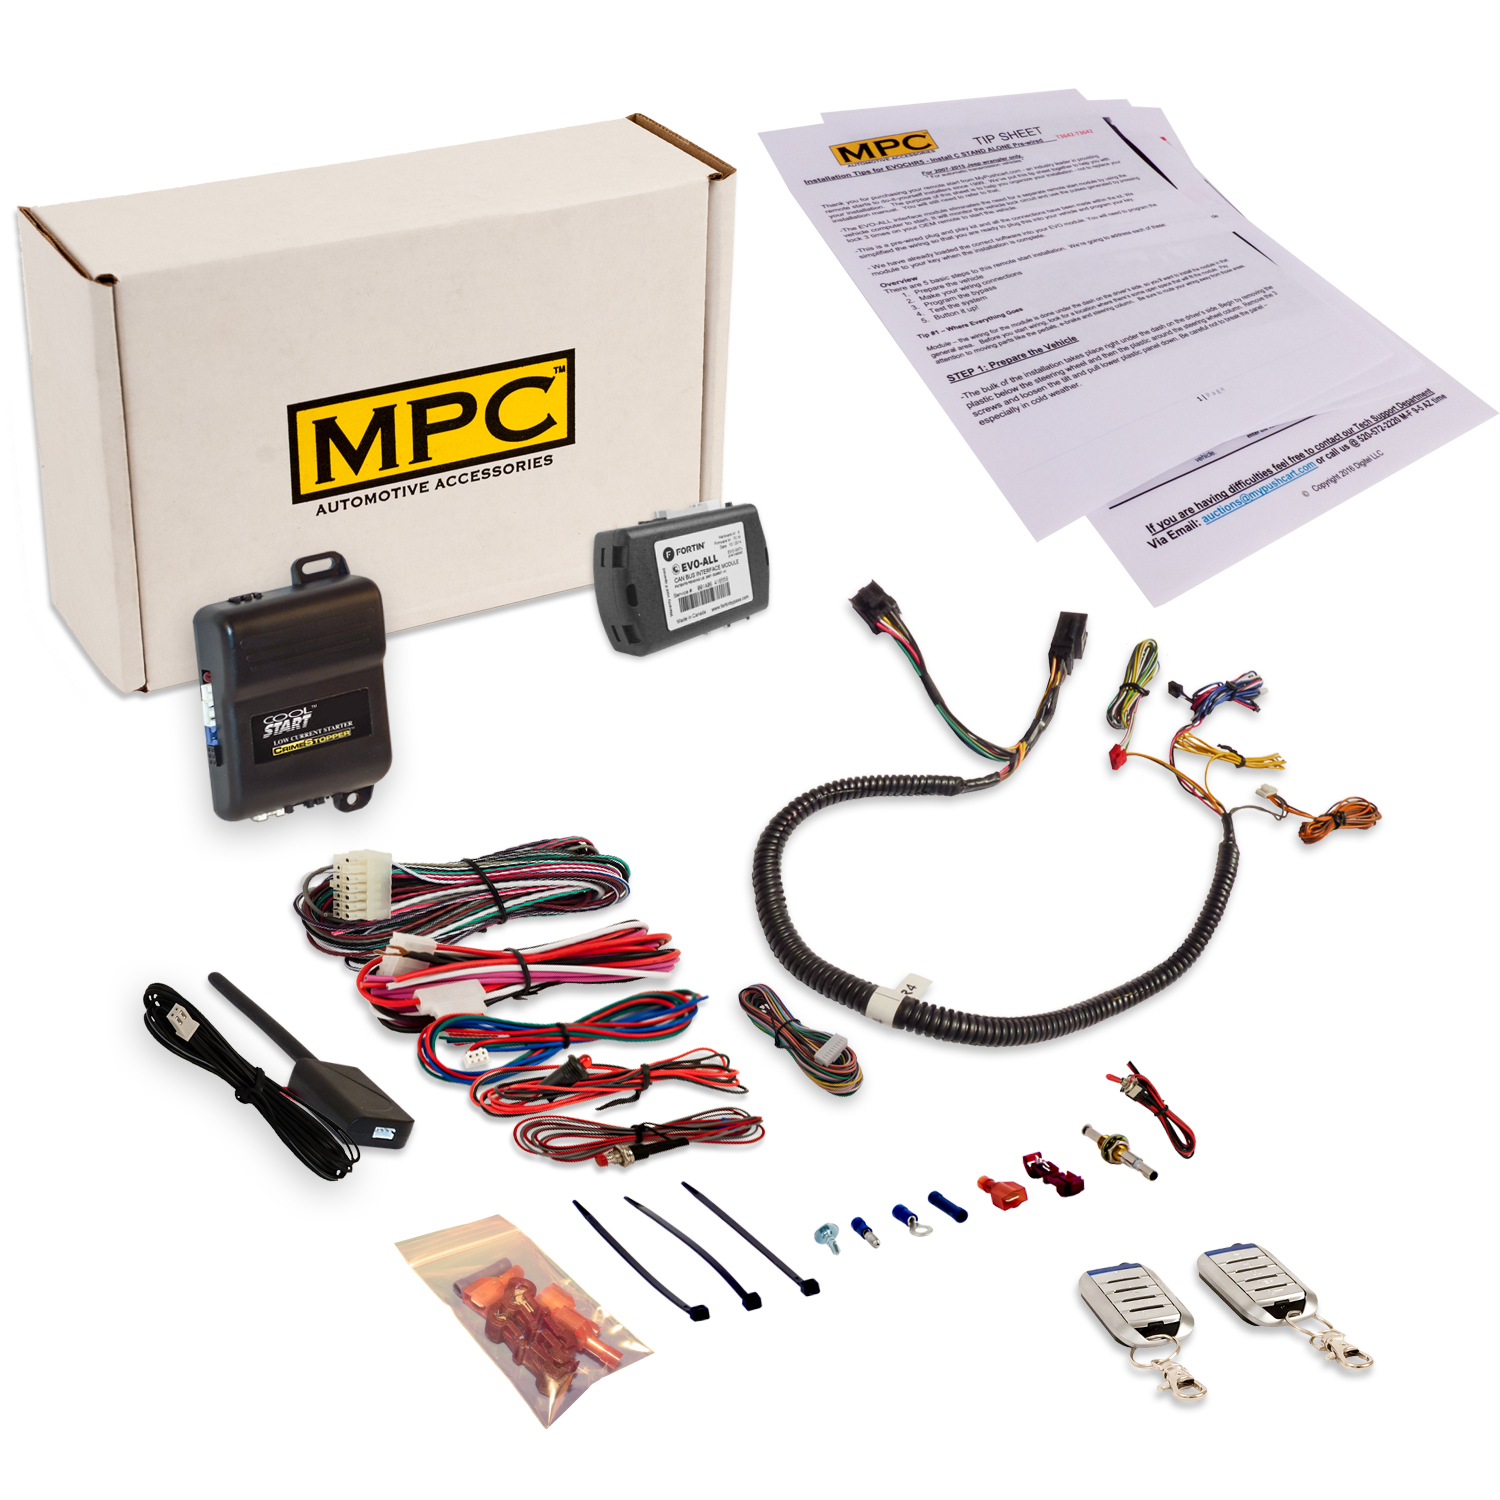 MPC Remote Start Kit for Chrysler Dodge Jeep 2008 & Up - ...